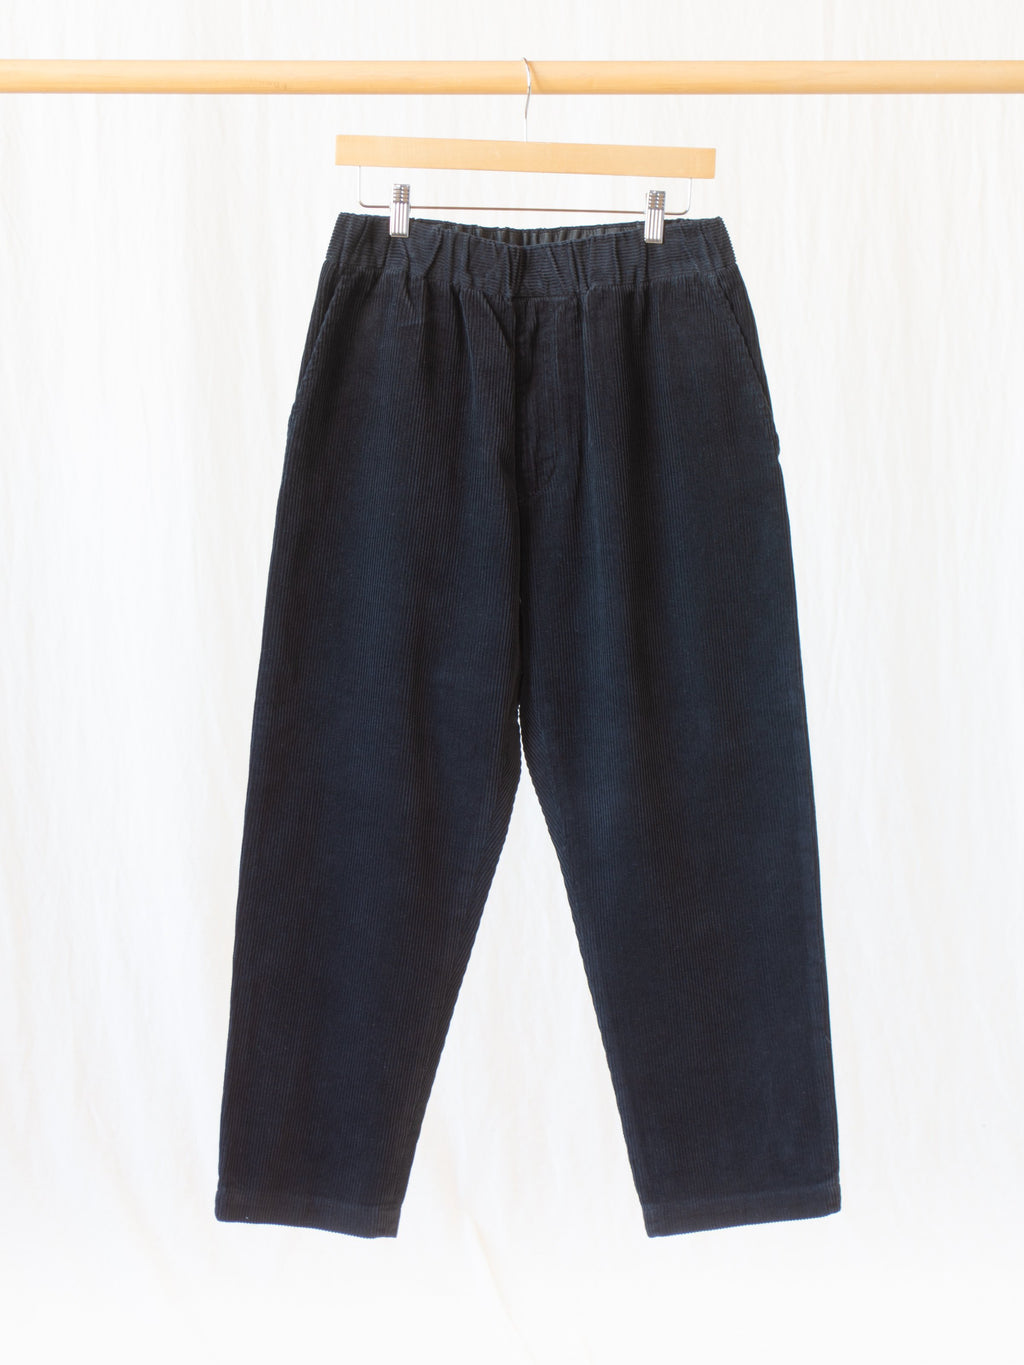 Namu Shop - Fujito Corduroy Easy Pants - Black